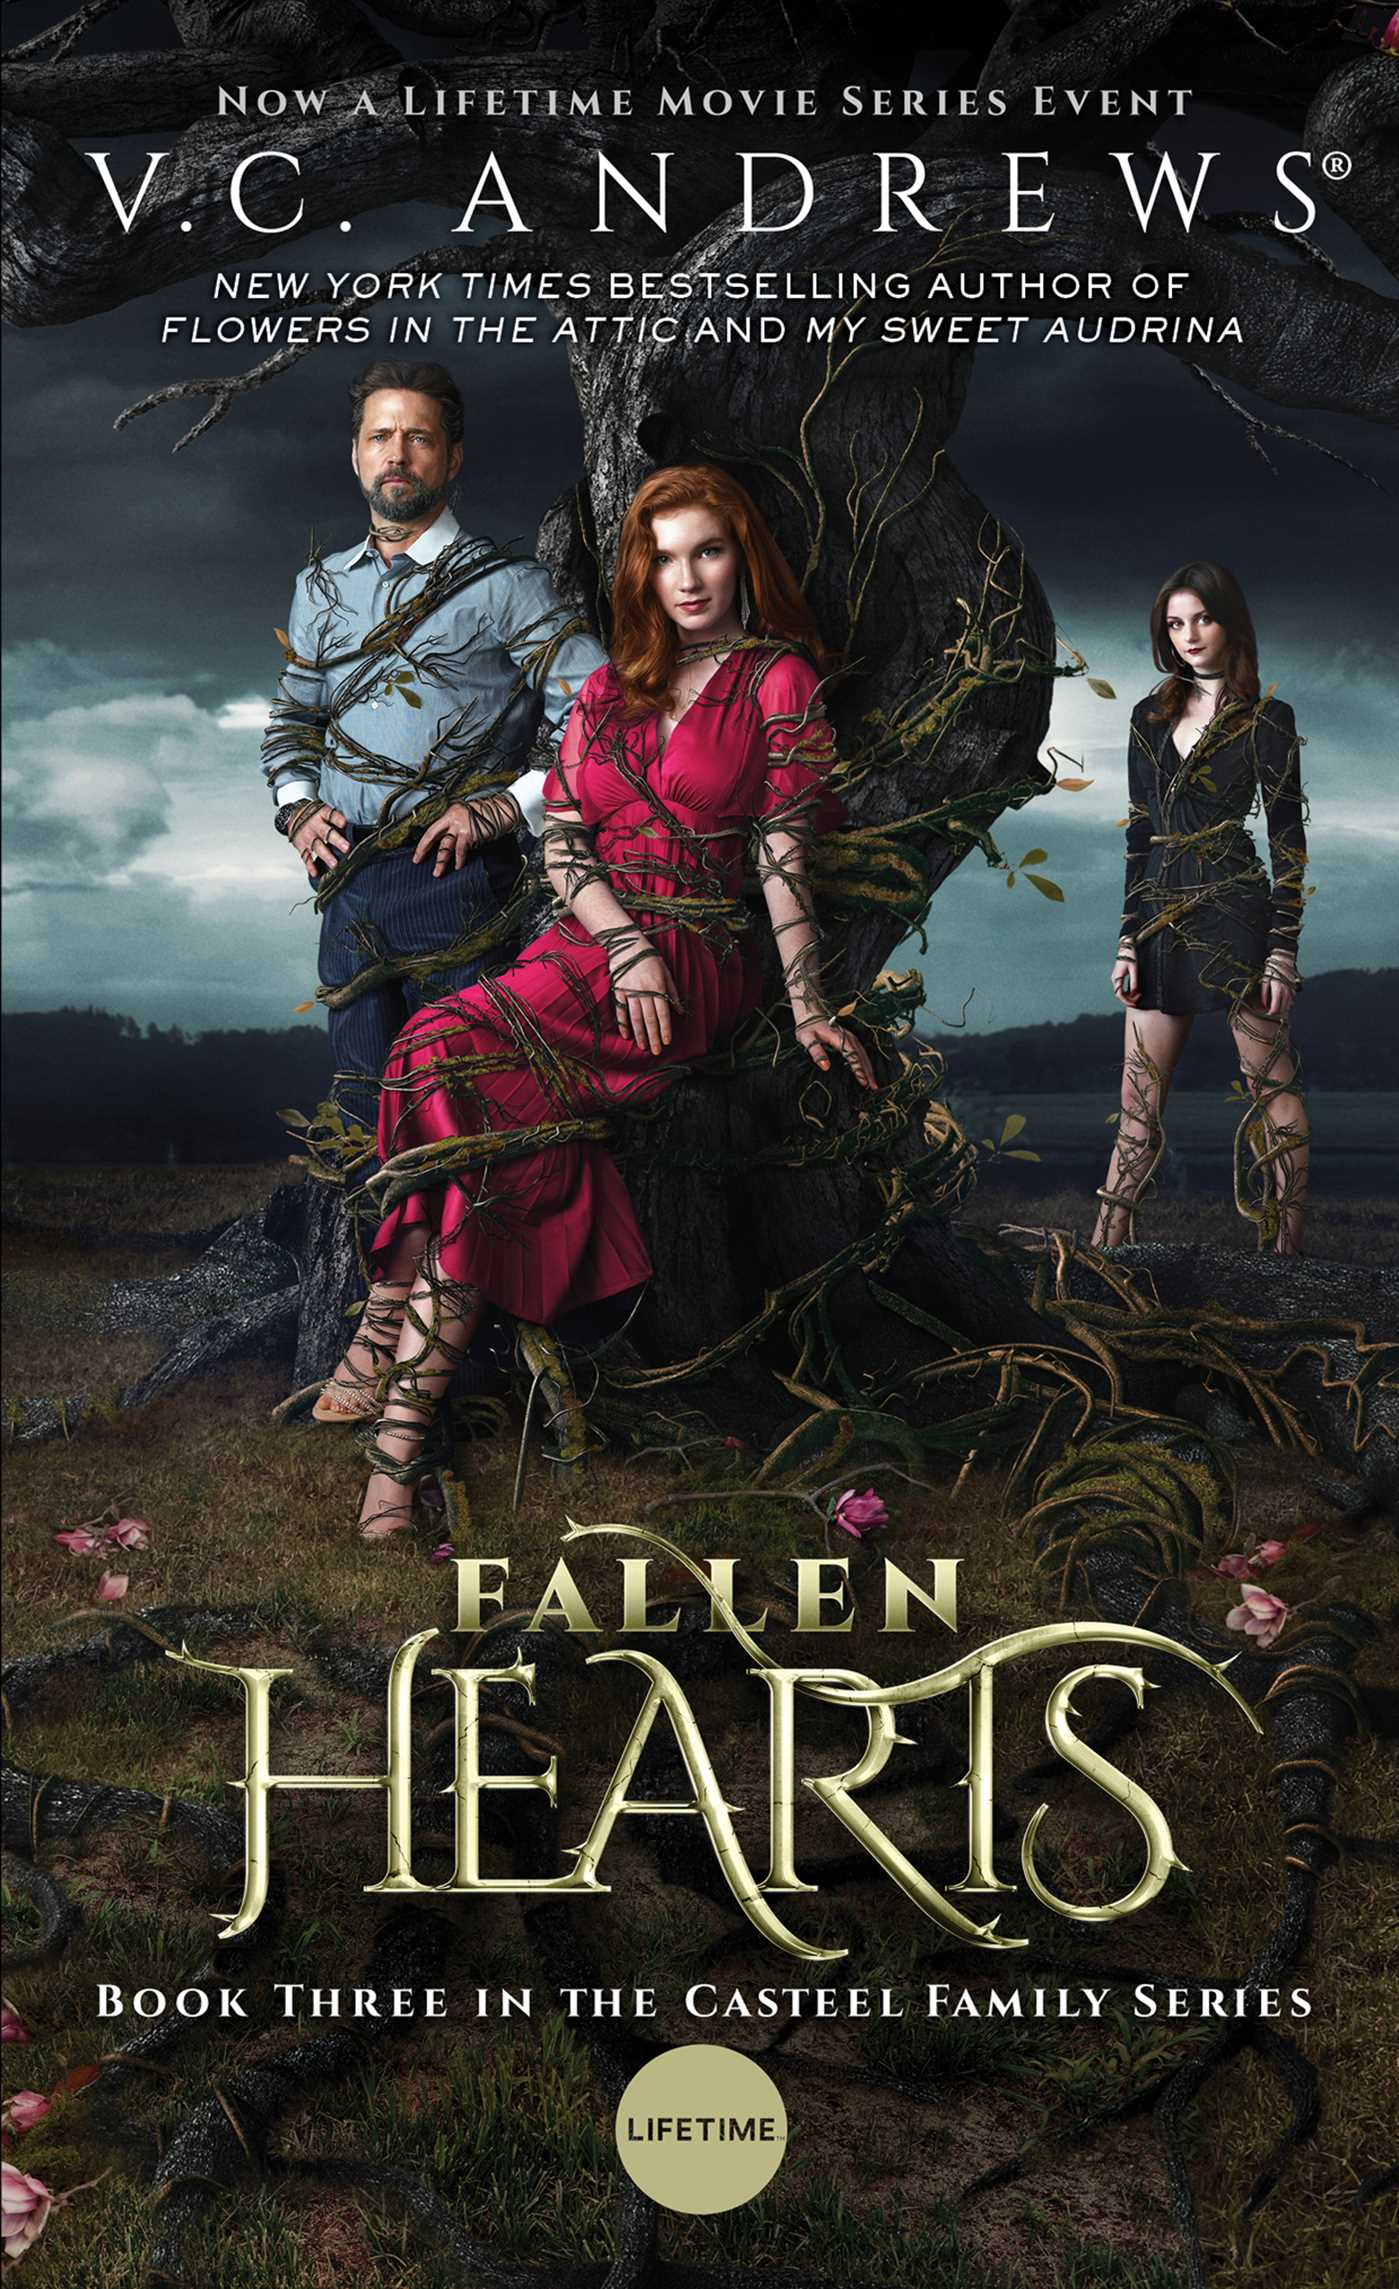 All Things Fair Full Movie Download fallen hearts | bookv.c. andrews | official publisher